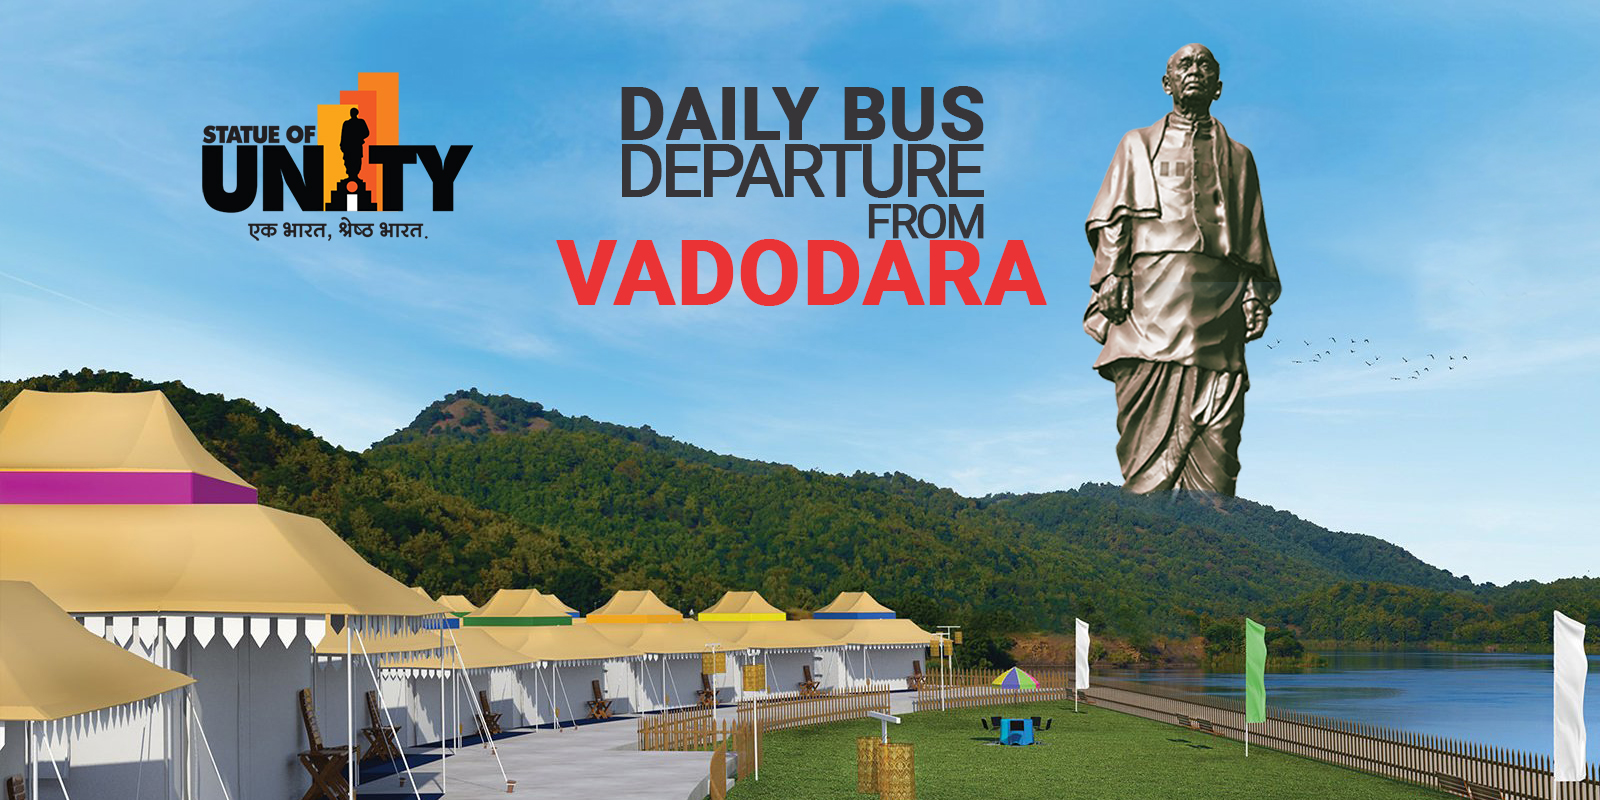 Statue of Unity Tent City